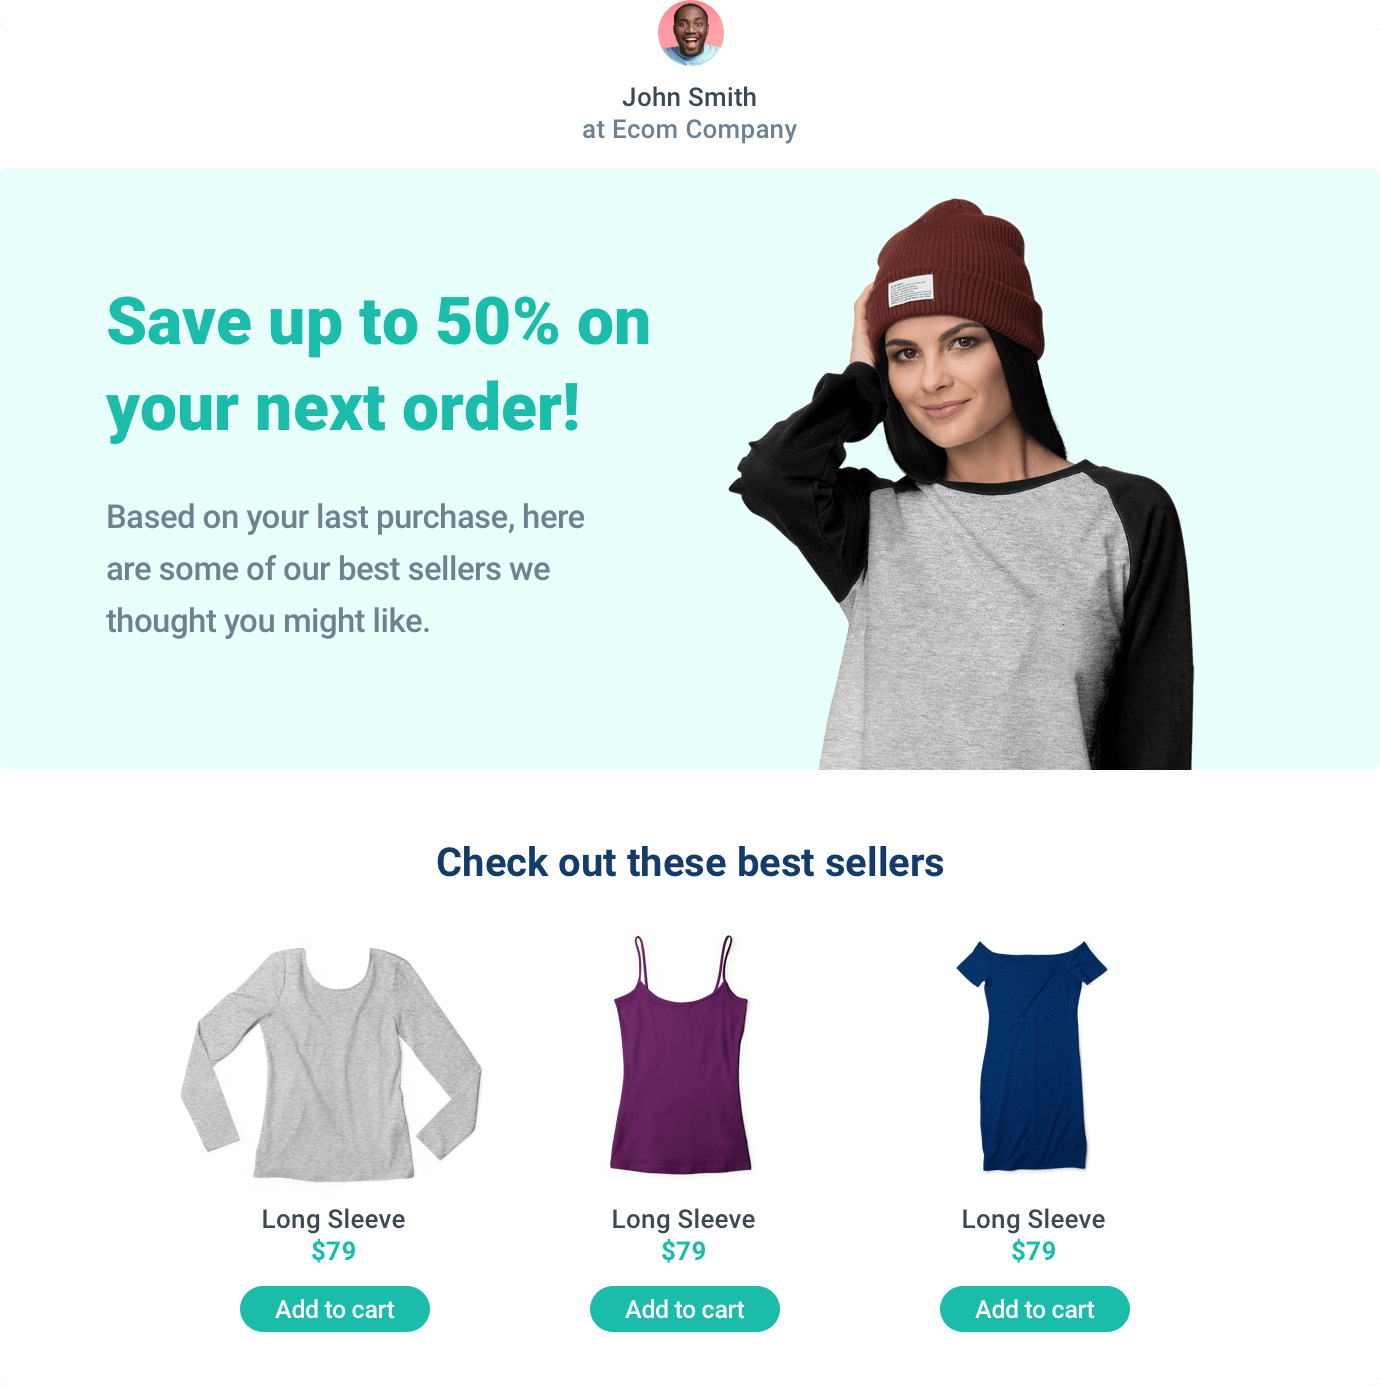 Embed content from Shopify in landing pages